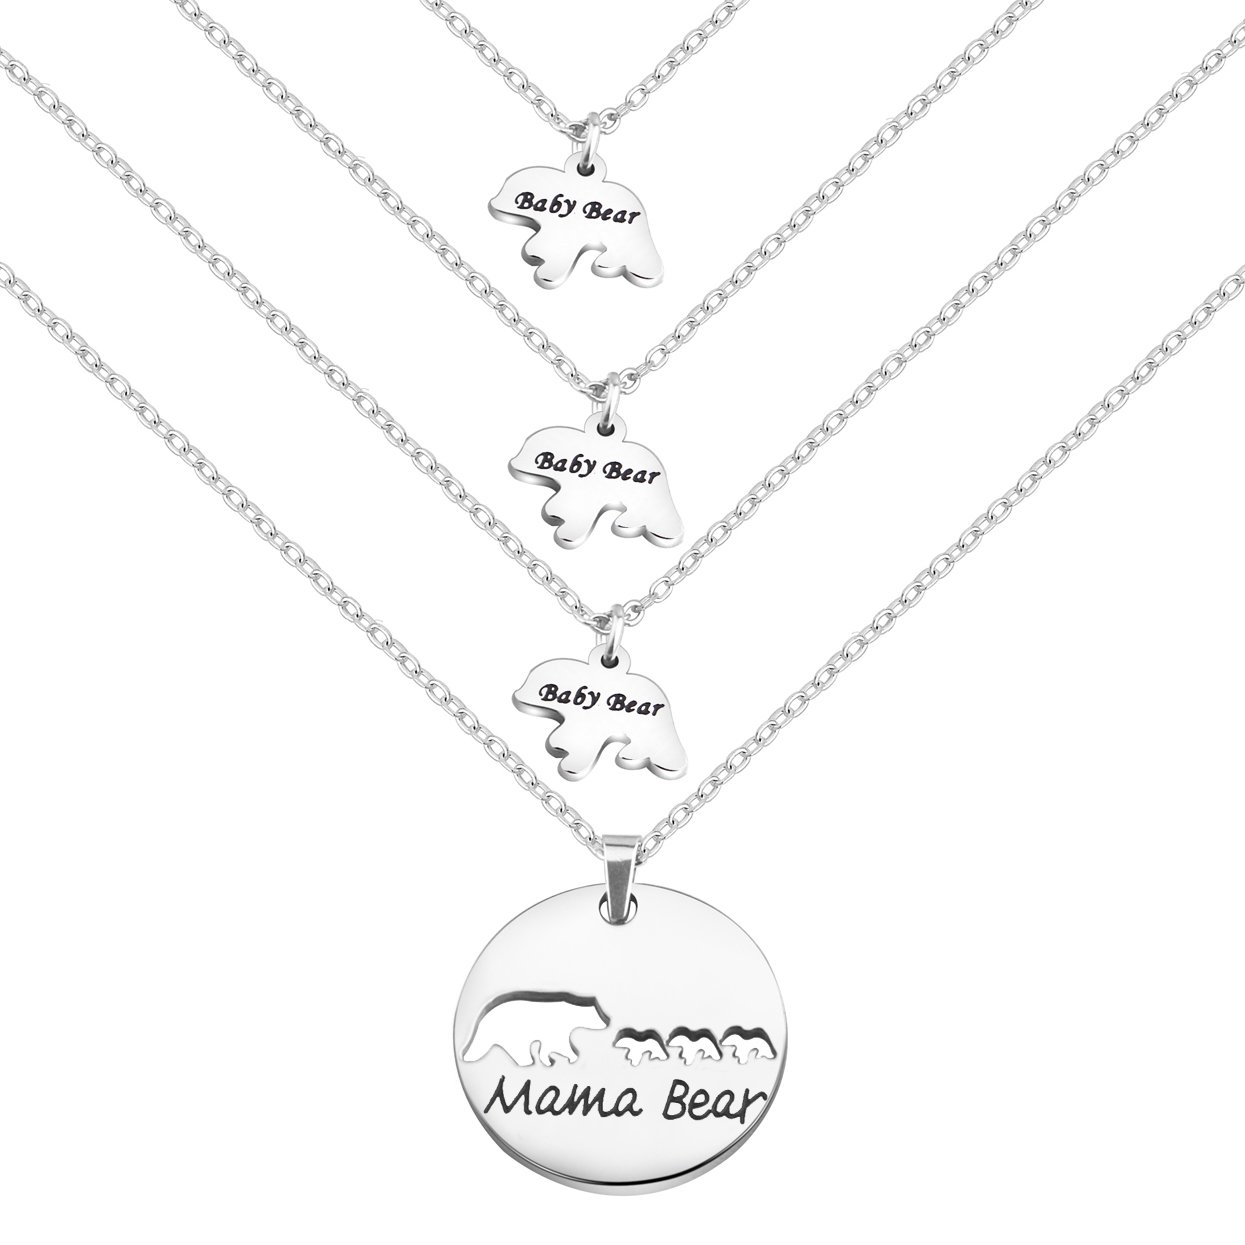 8bc5b9da1 Material: Mama Bear and Baby Bear Necklace are made of 316L Stainless Steel,  it is lead free and nickel free.Stainless Steel is hypo allergenic, ...